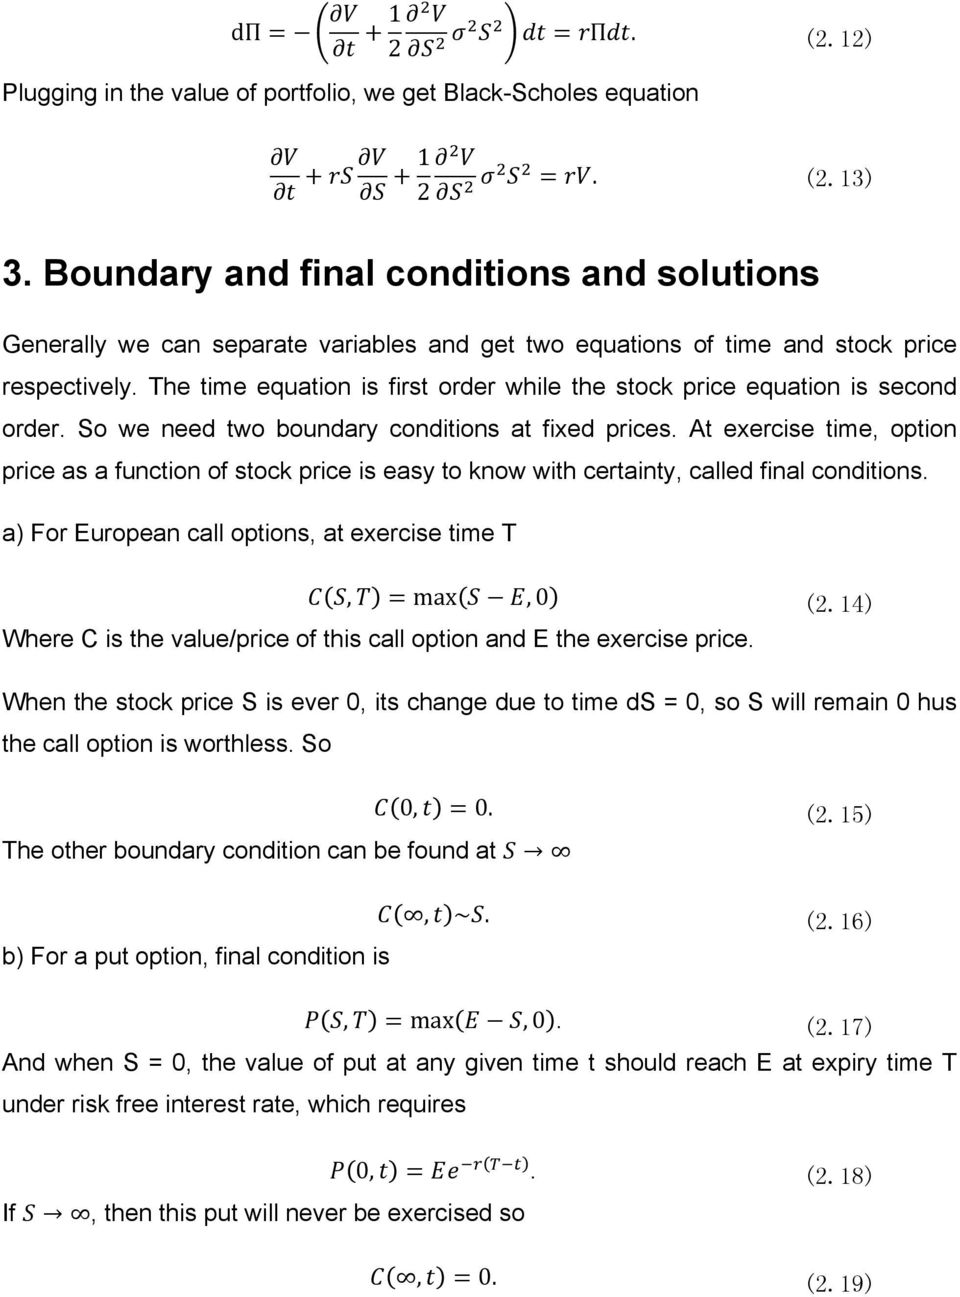 The time equation is first order while the stock price equation is second order. So we need two boundary conditions at fixed prices.